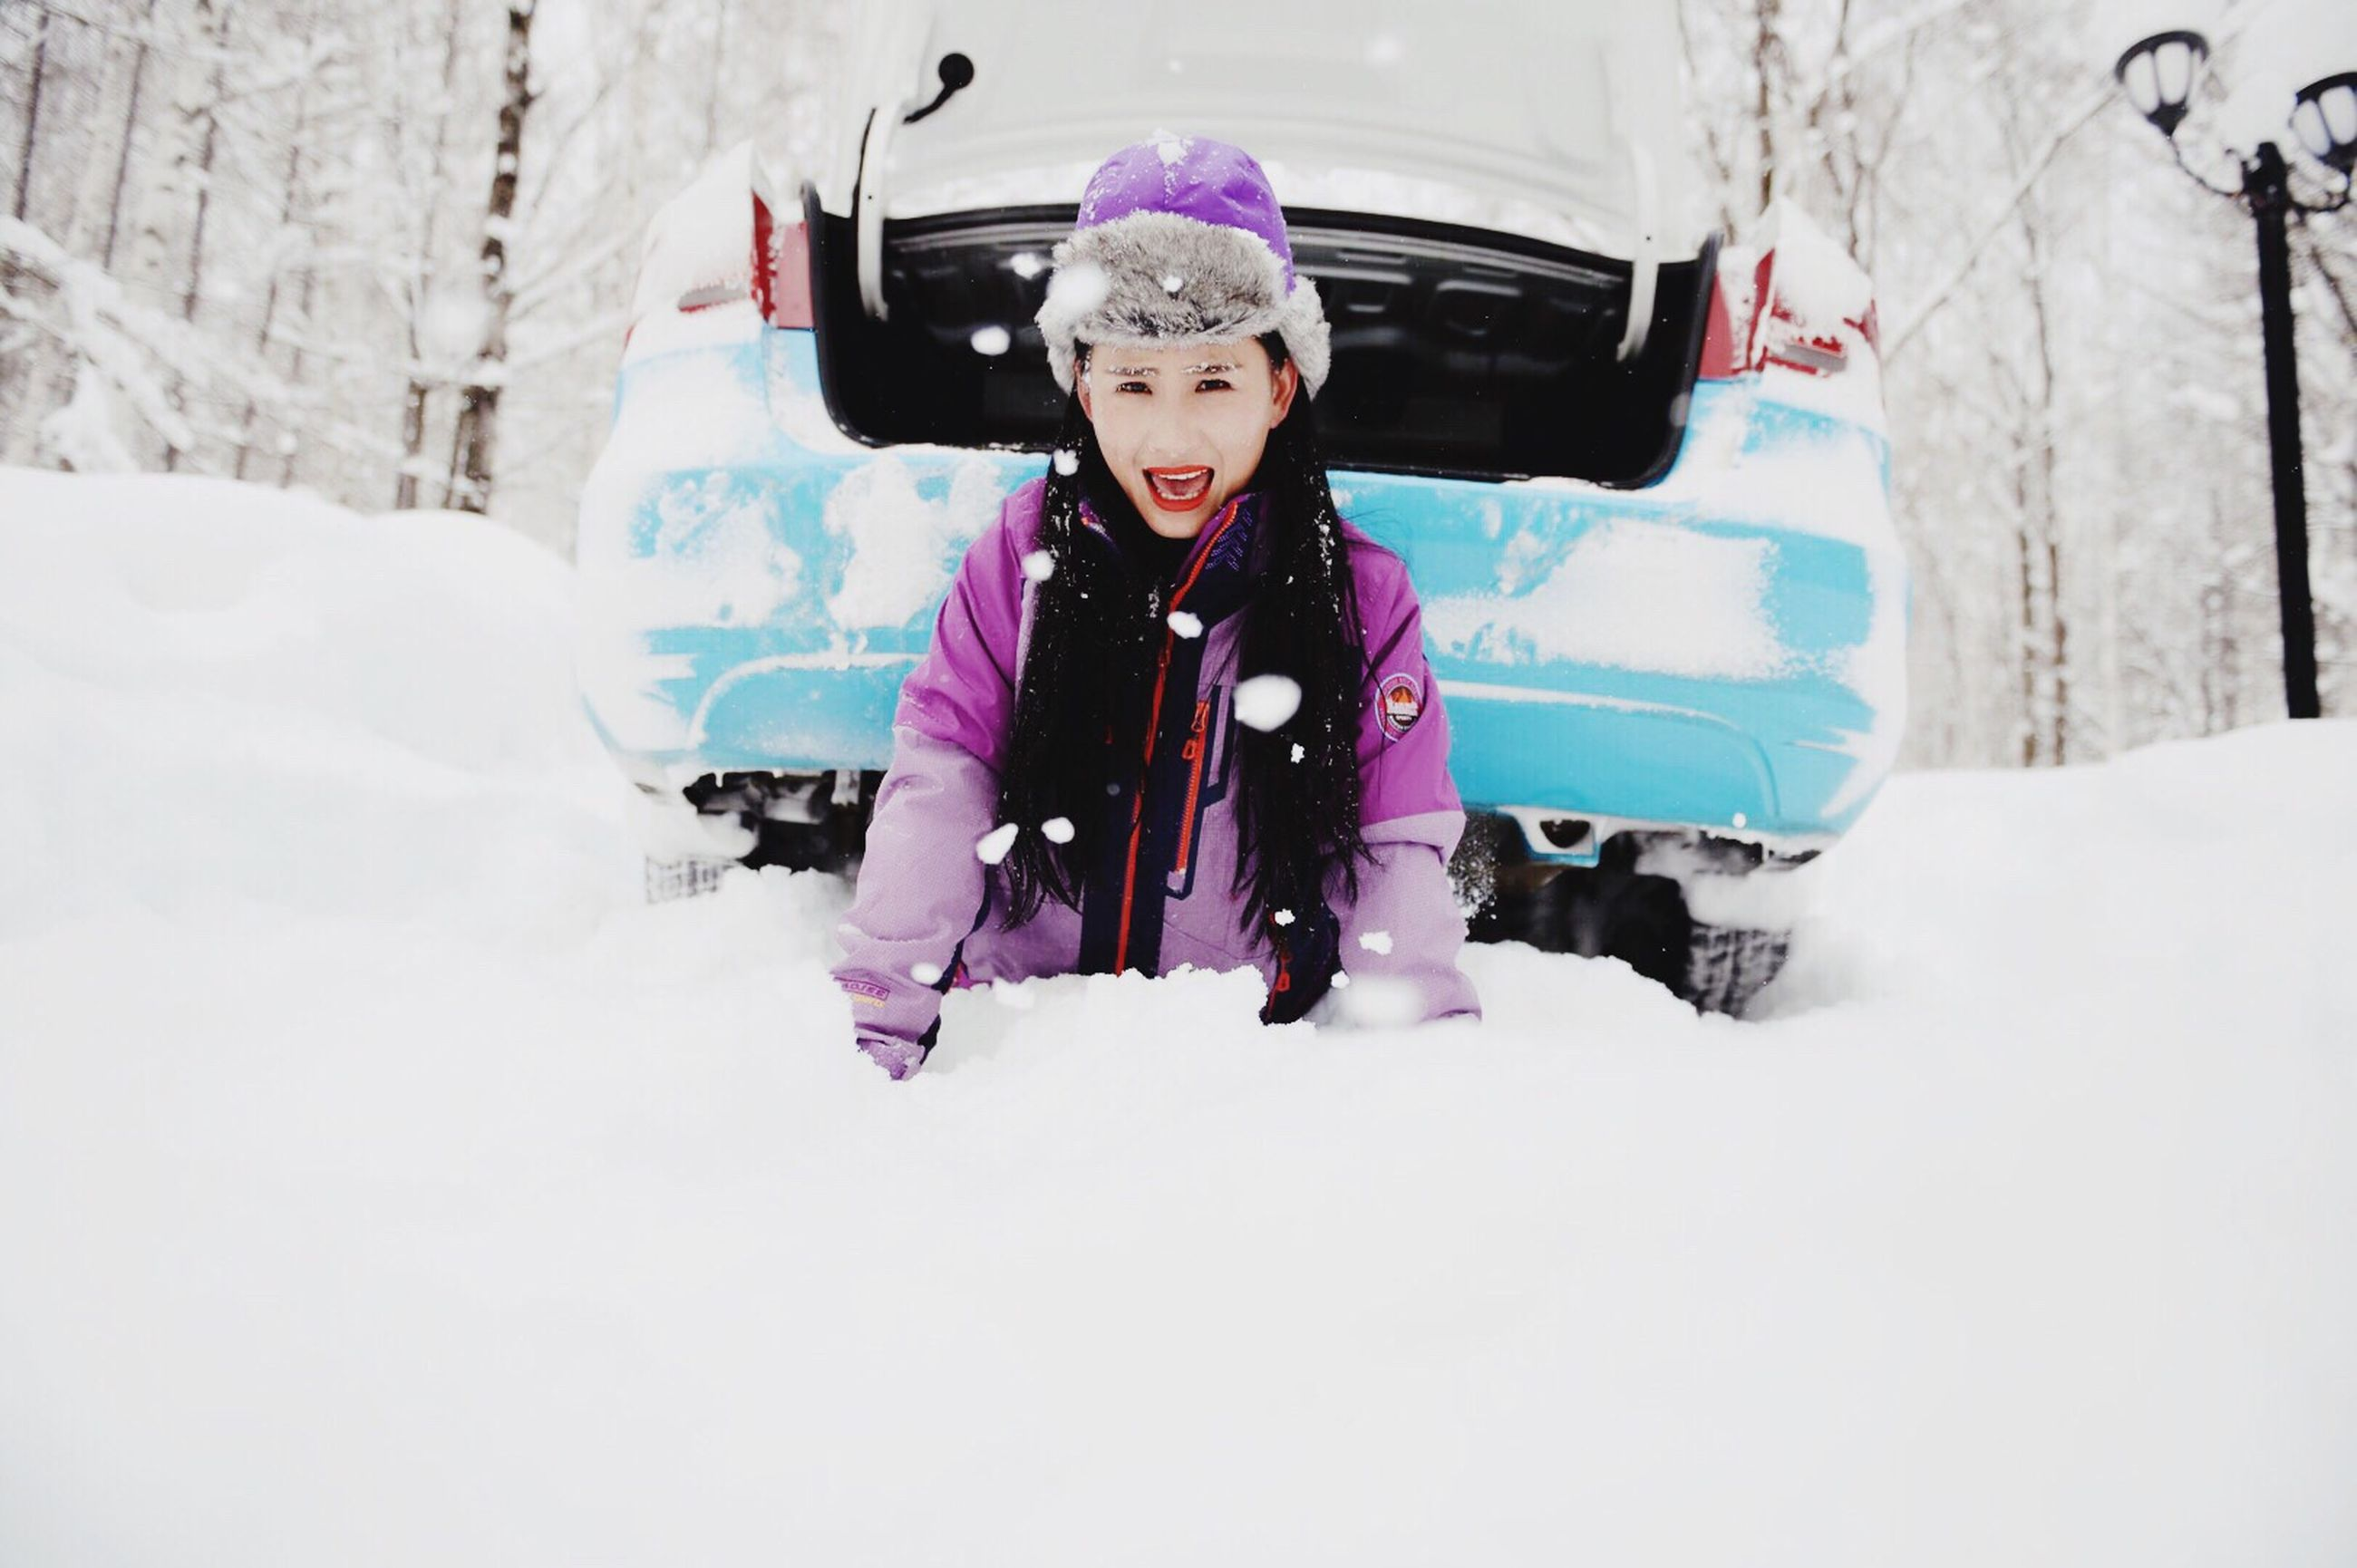 winter, snow, cold temperature, lifestyles, leisure activity, season, looking at camera, warm clothing, portrait, person, front view, full length, childhood, happiness, casual clothing, smiling, enjoyment, fun, standing